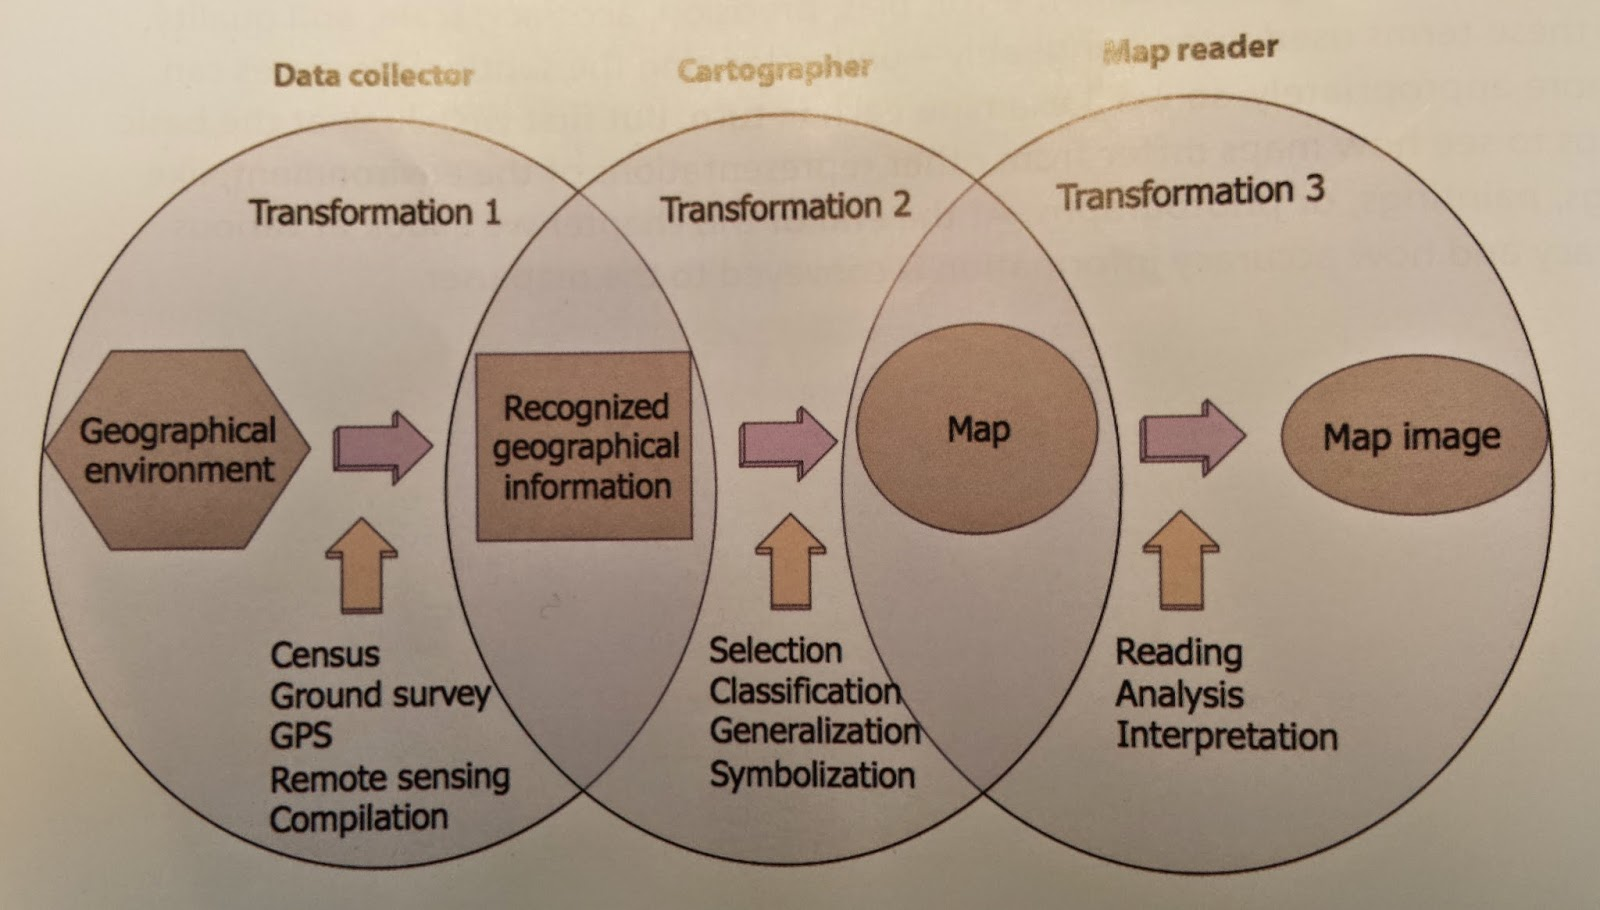 are transformations of space involving map projections coordinate systems applications use cartographic symbolization